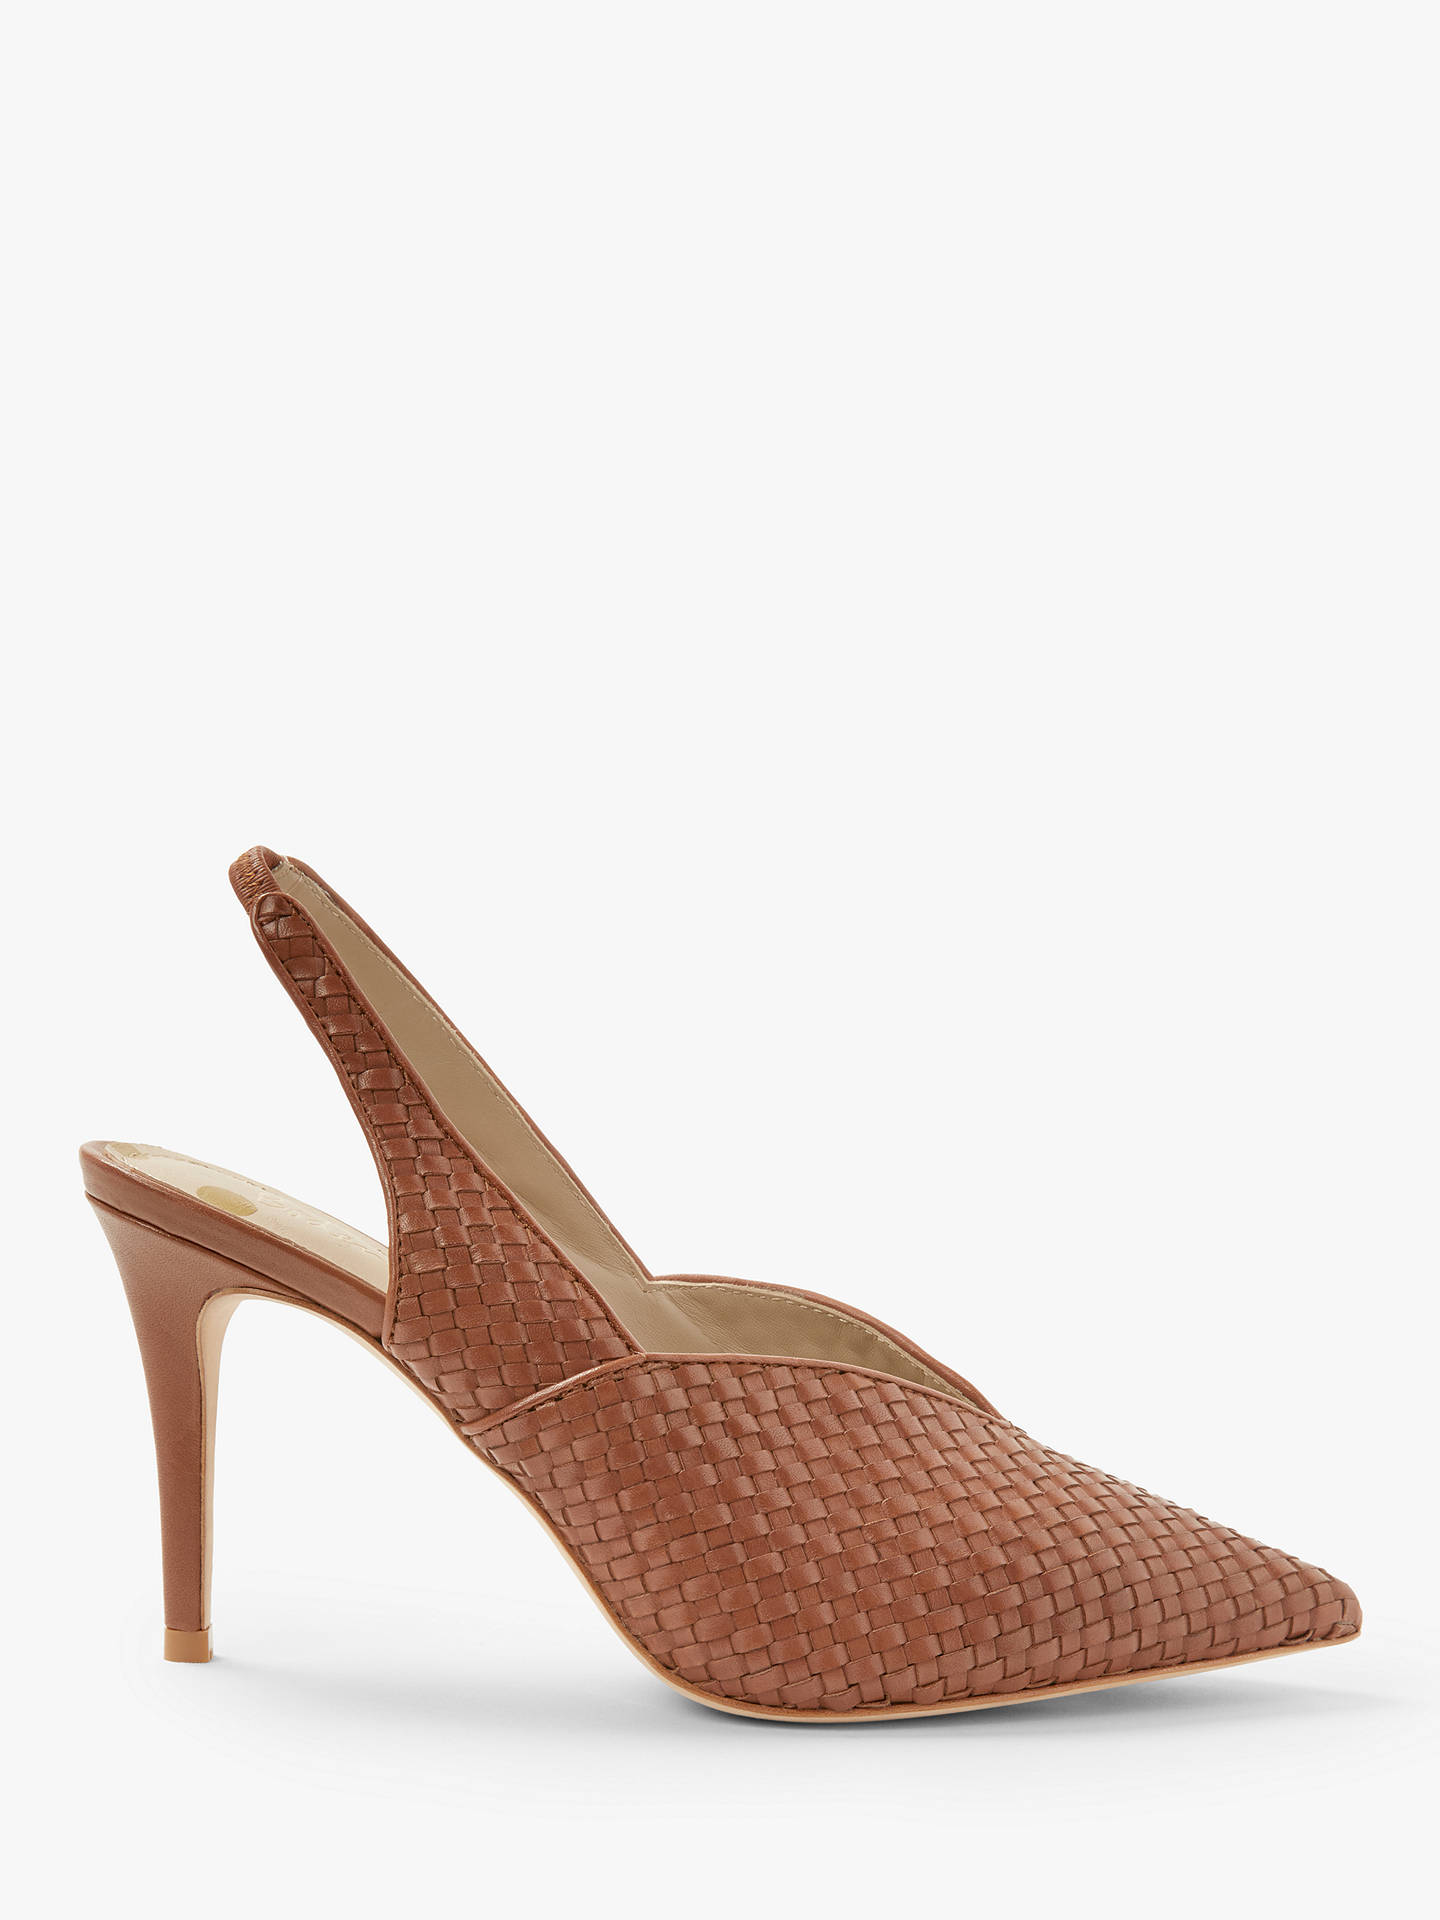 fed39919ed033 Buy Boden Hazel Woven Slingback Stiletto Heel Court Shoes, Tan Leather, 5  Online at ...